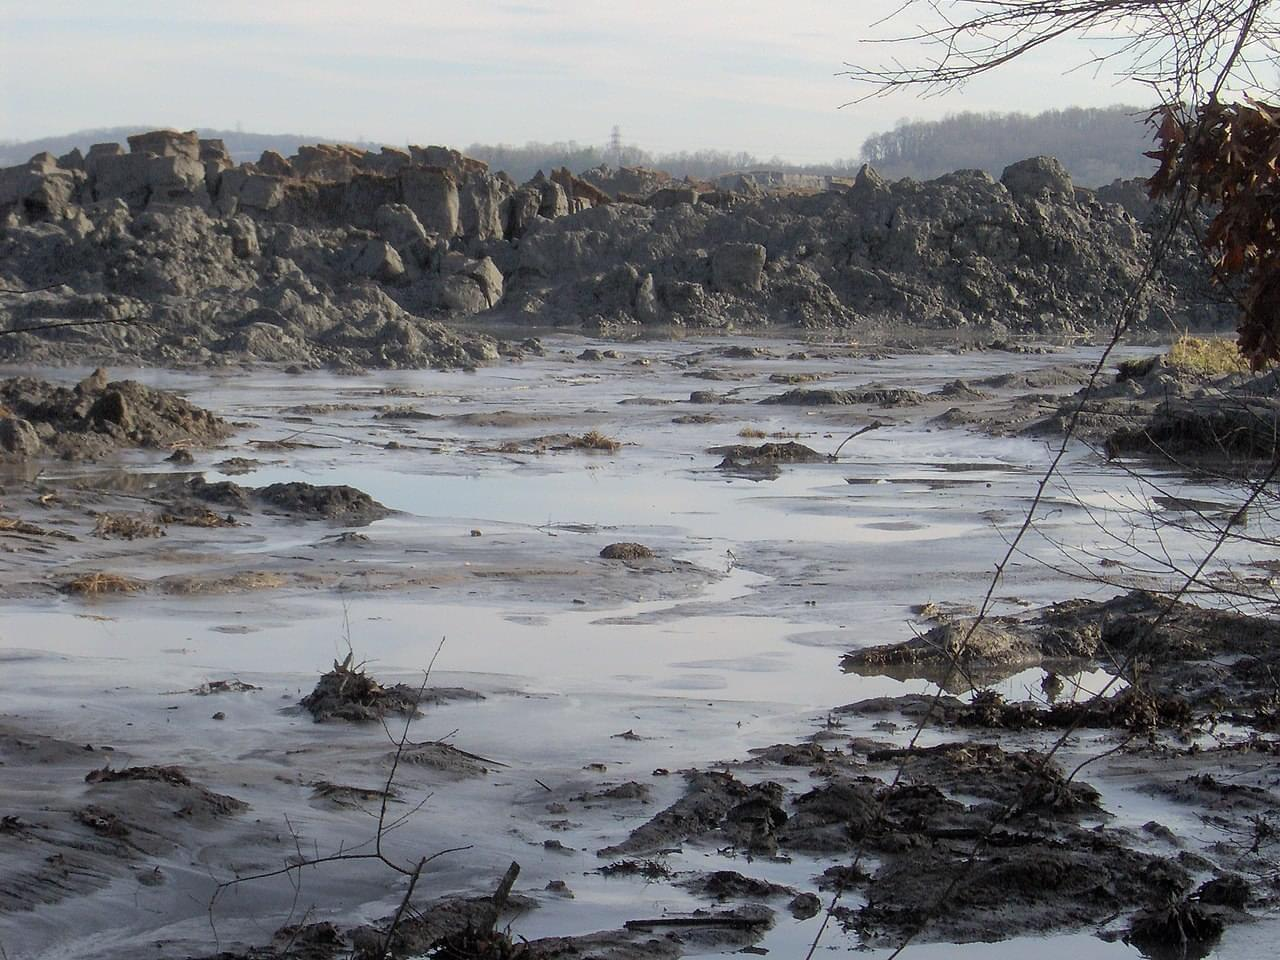 A view of the TVA Kingston Fossil Plant coal ash spill